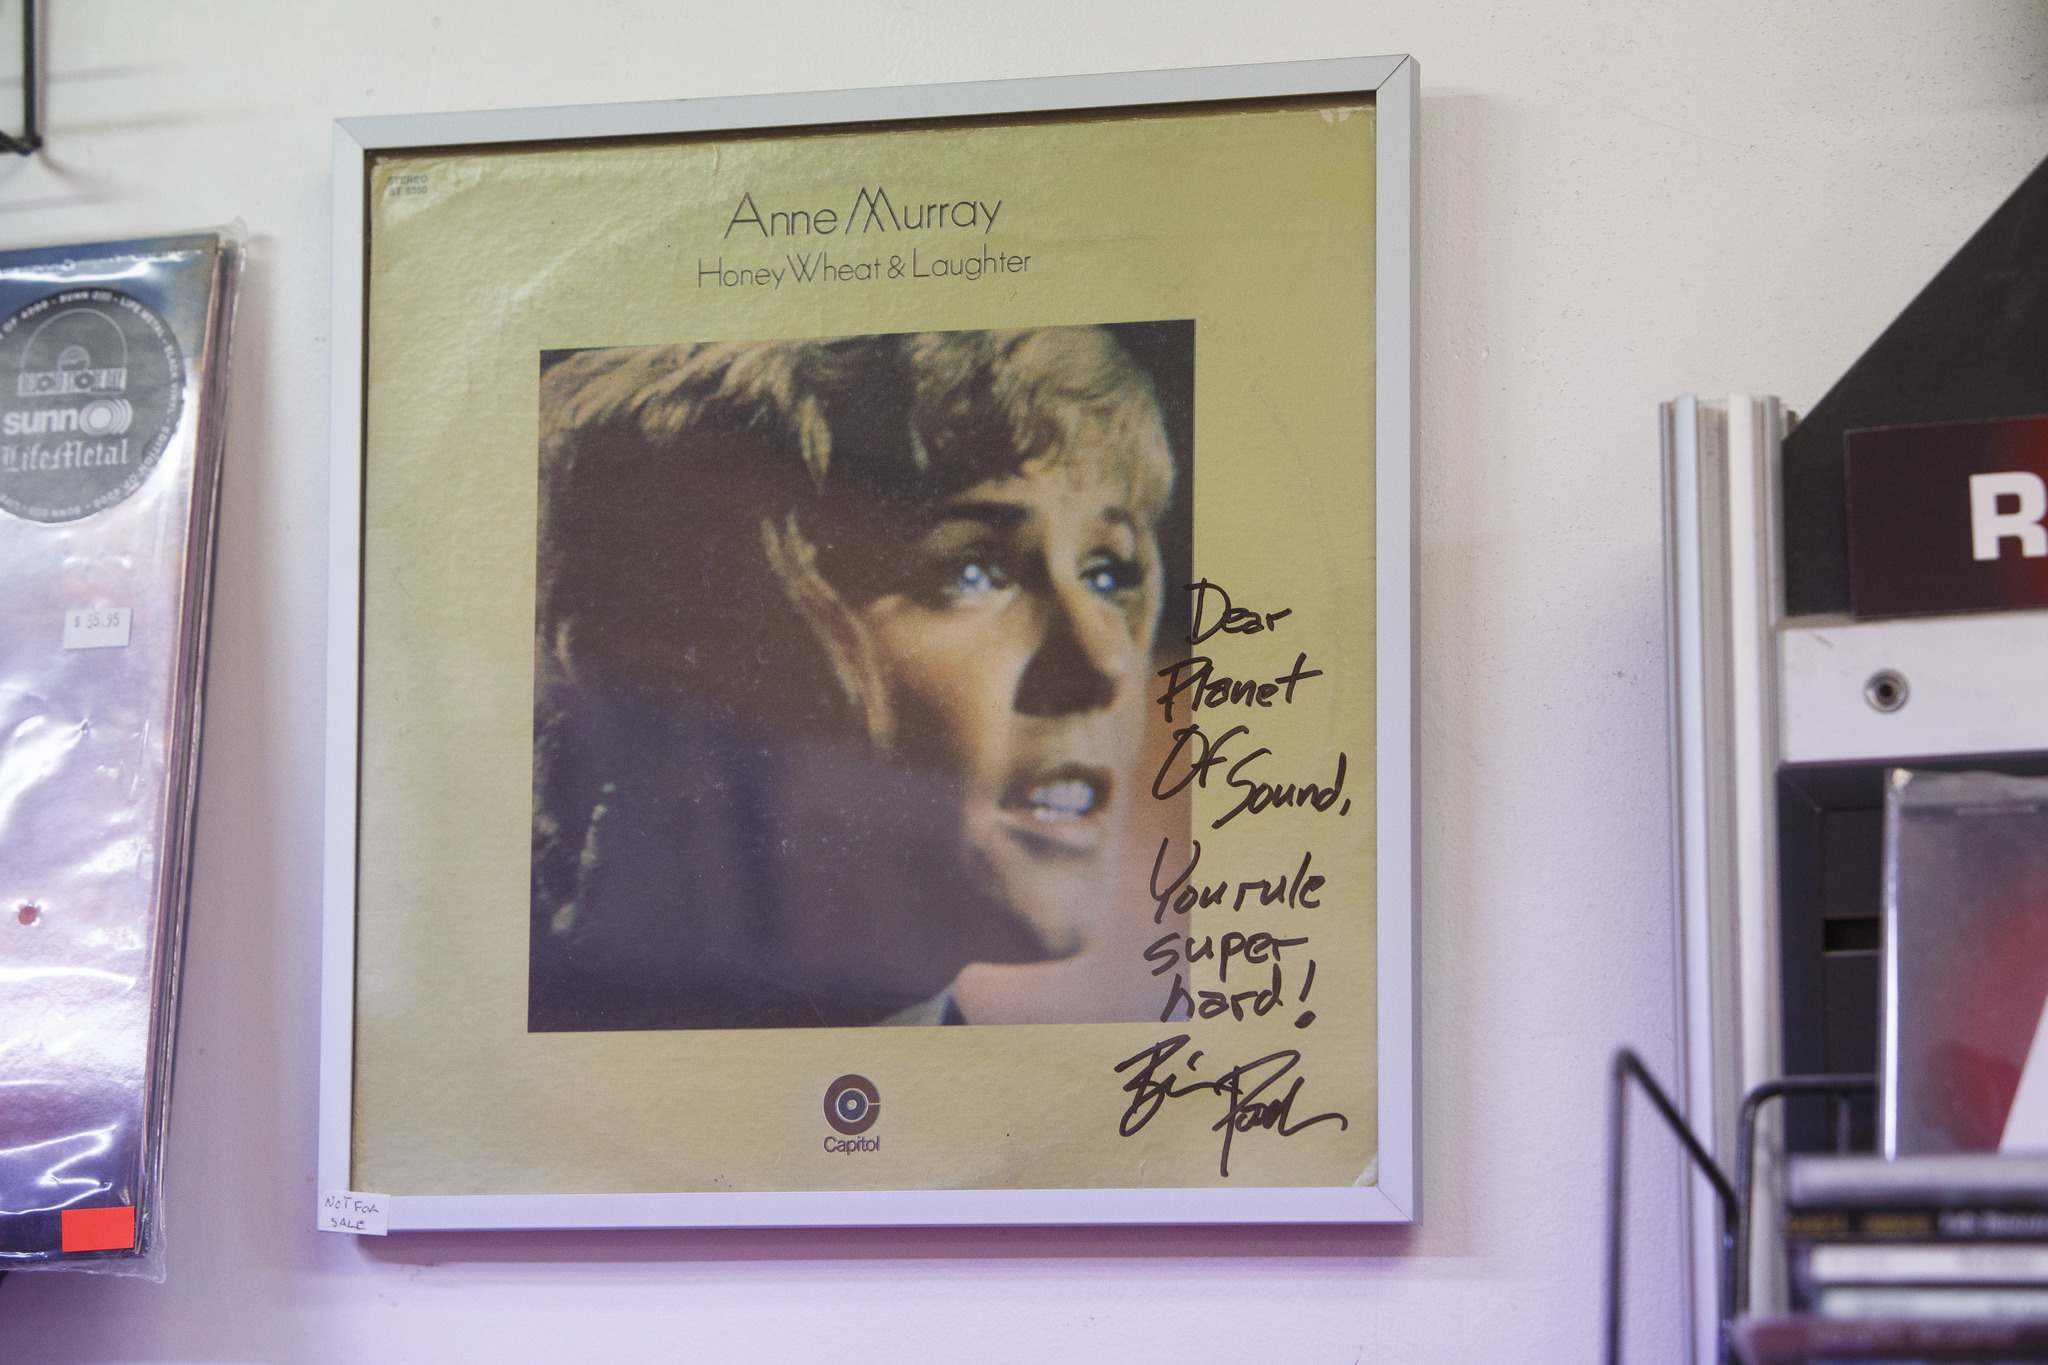 Wright asked actor/comedian Brian Posehn to sign a copy of Anne Murray's Honey, Wheat & Laughter that now hangs on the wall by the cash register.</p>